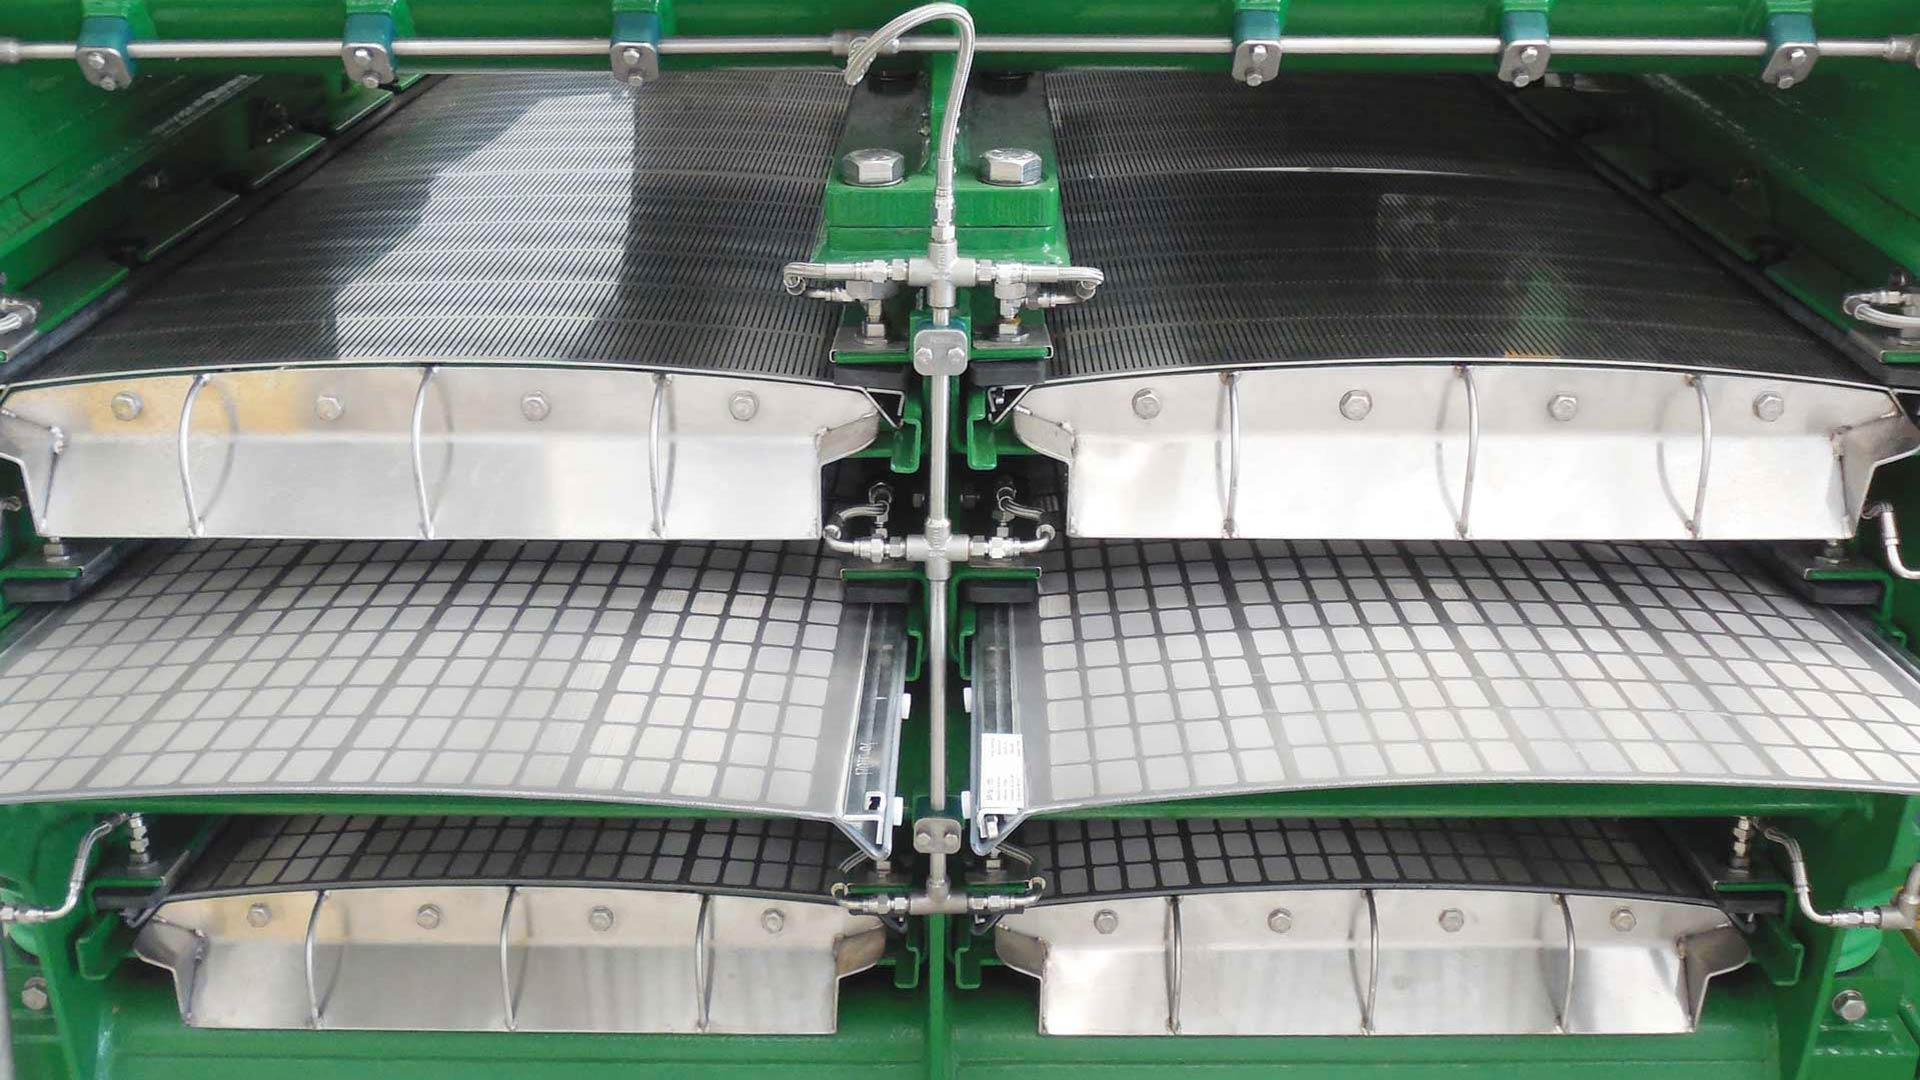 A front view of an AX Screening System